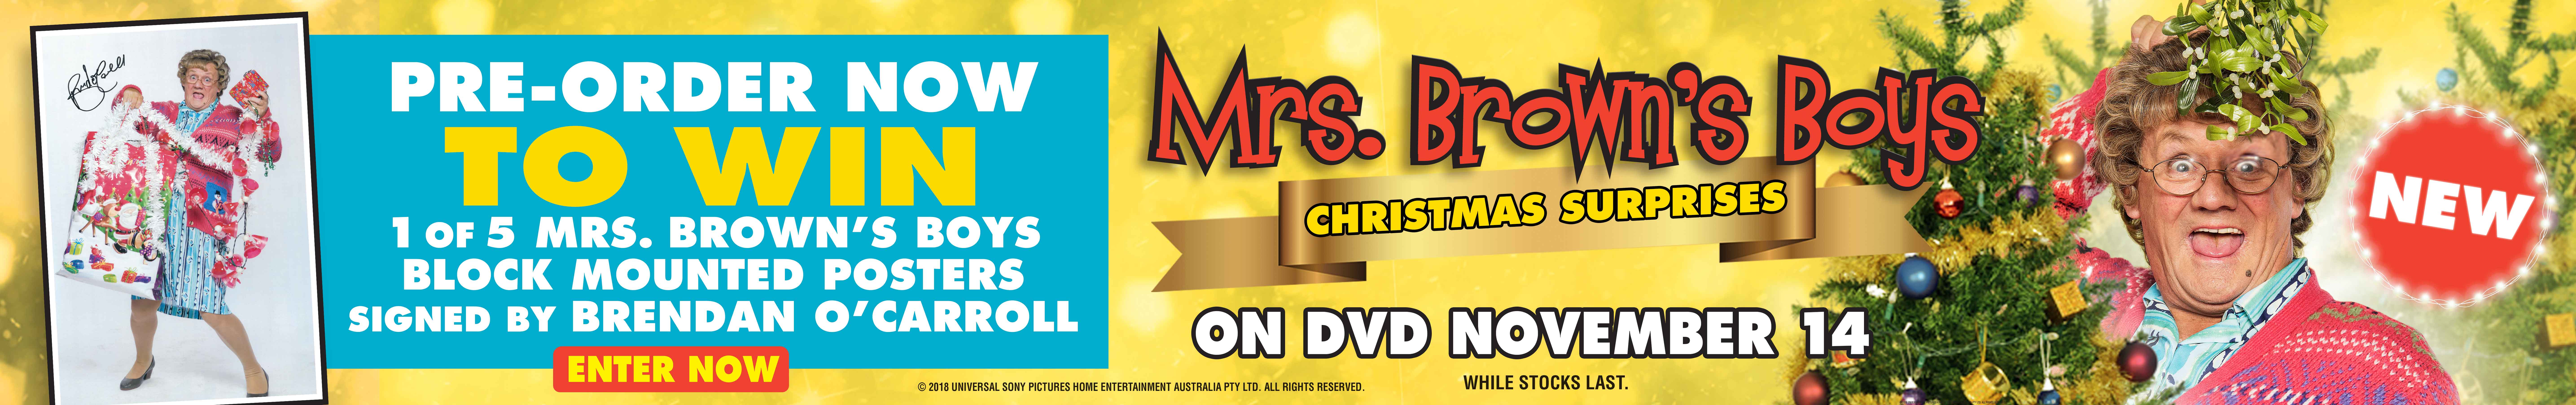 Win 1 Of 5 Signed Mrs Browns Boys Posters